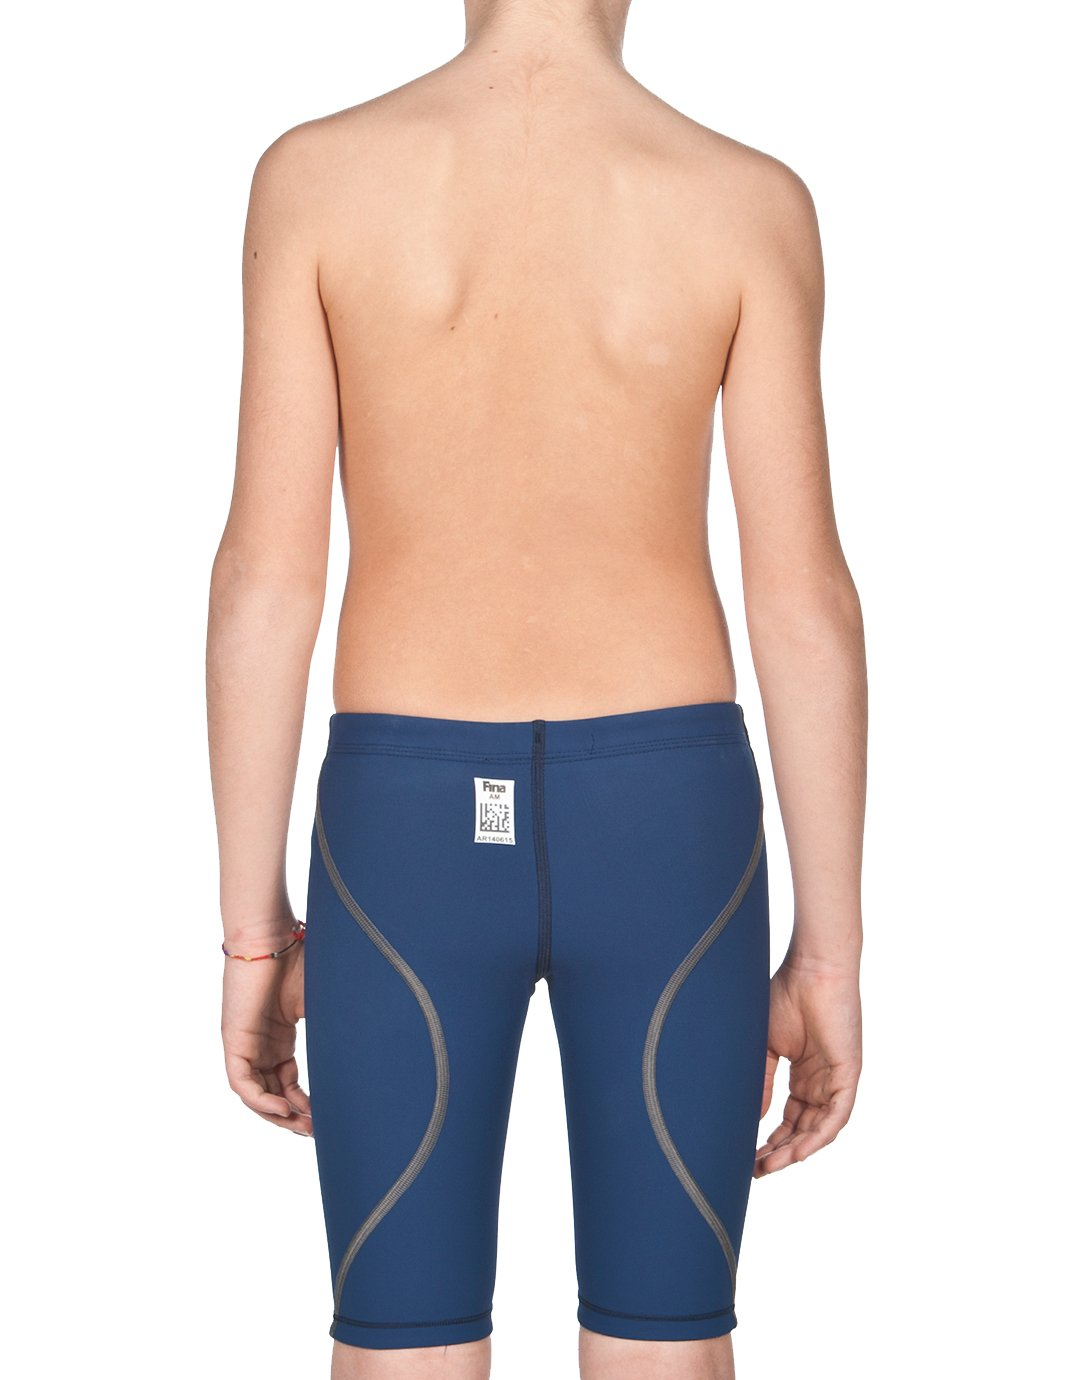 663ee57f9f Arena Boys Powerskin ST 2 Jammer - Navy | Simply Swim UK